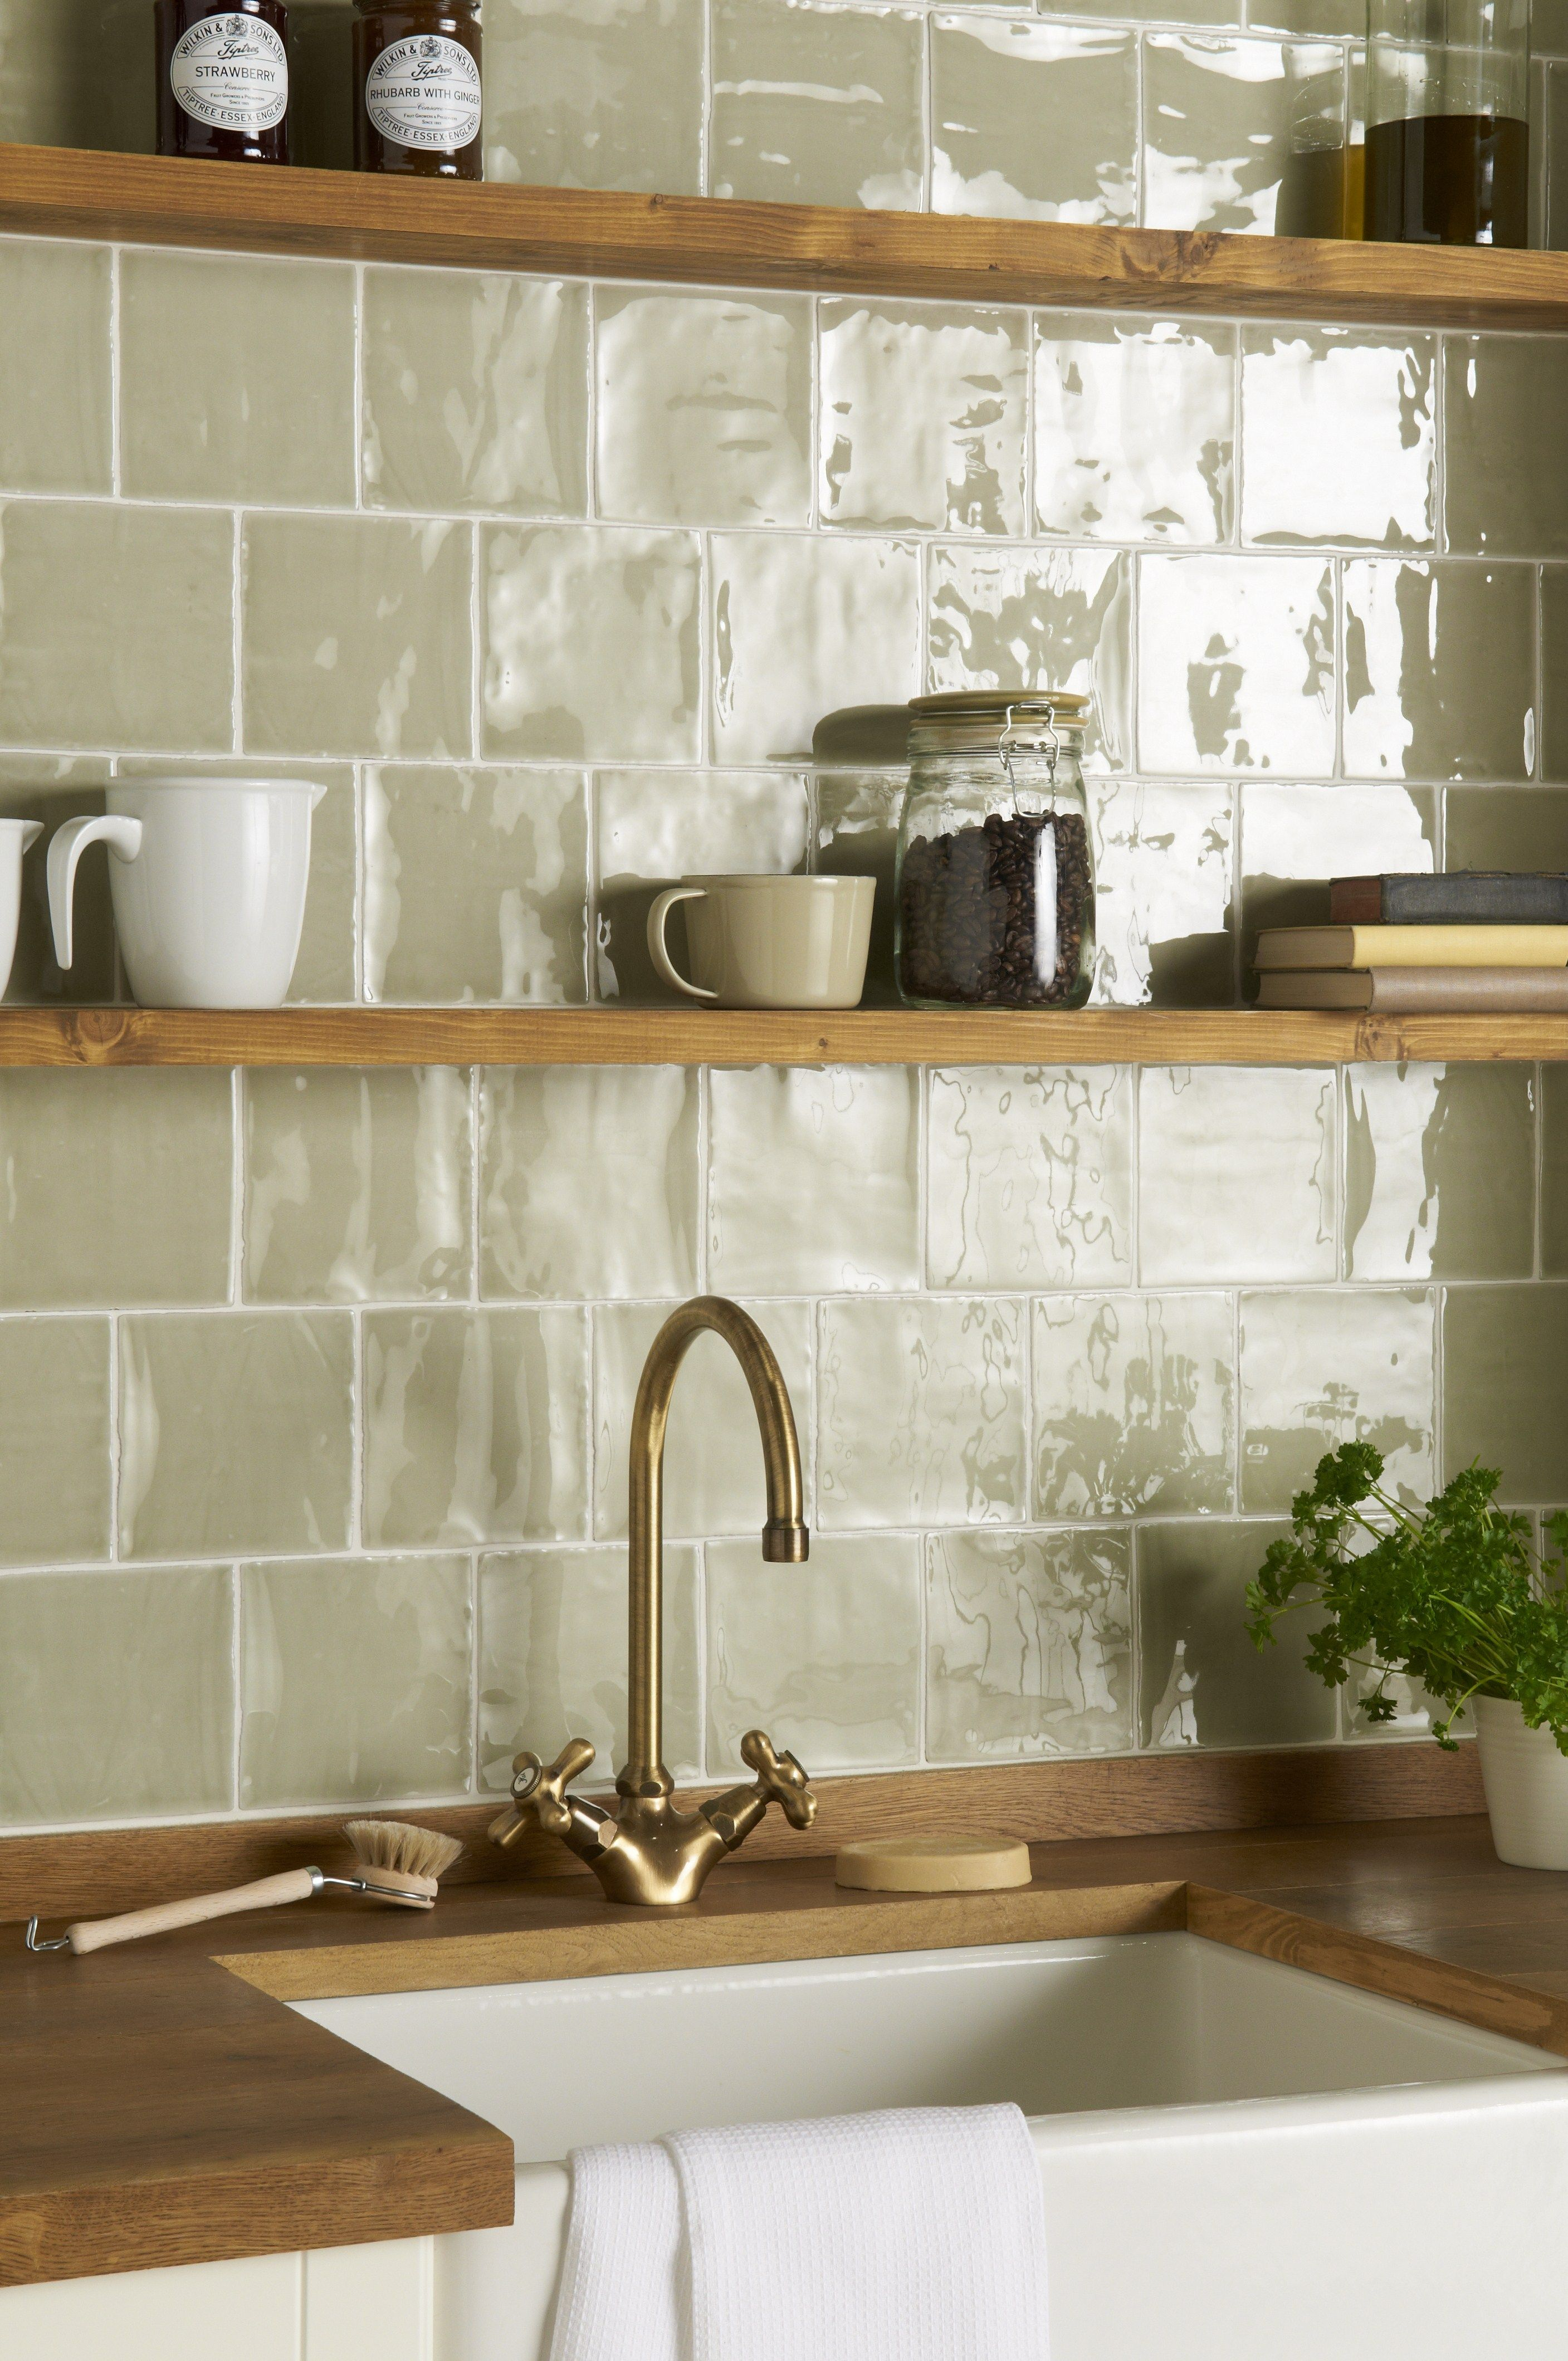 Mere tiles rocklings kitchen pinterest winchester kitchens